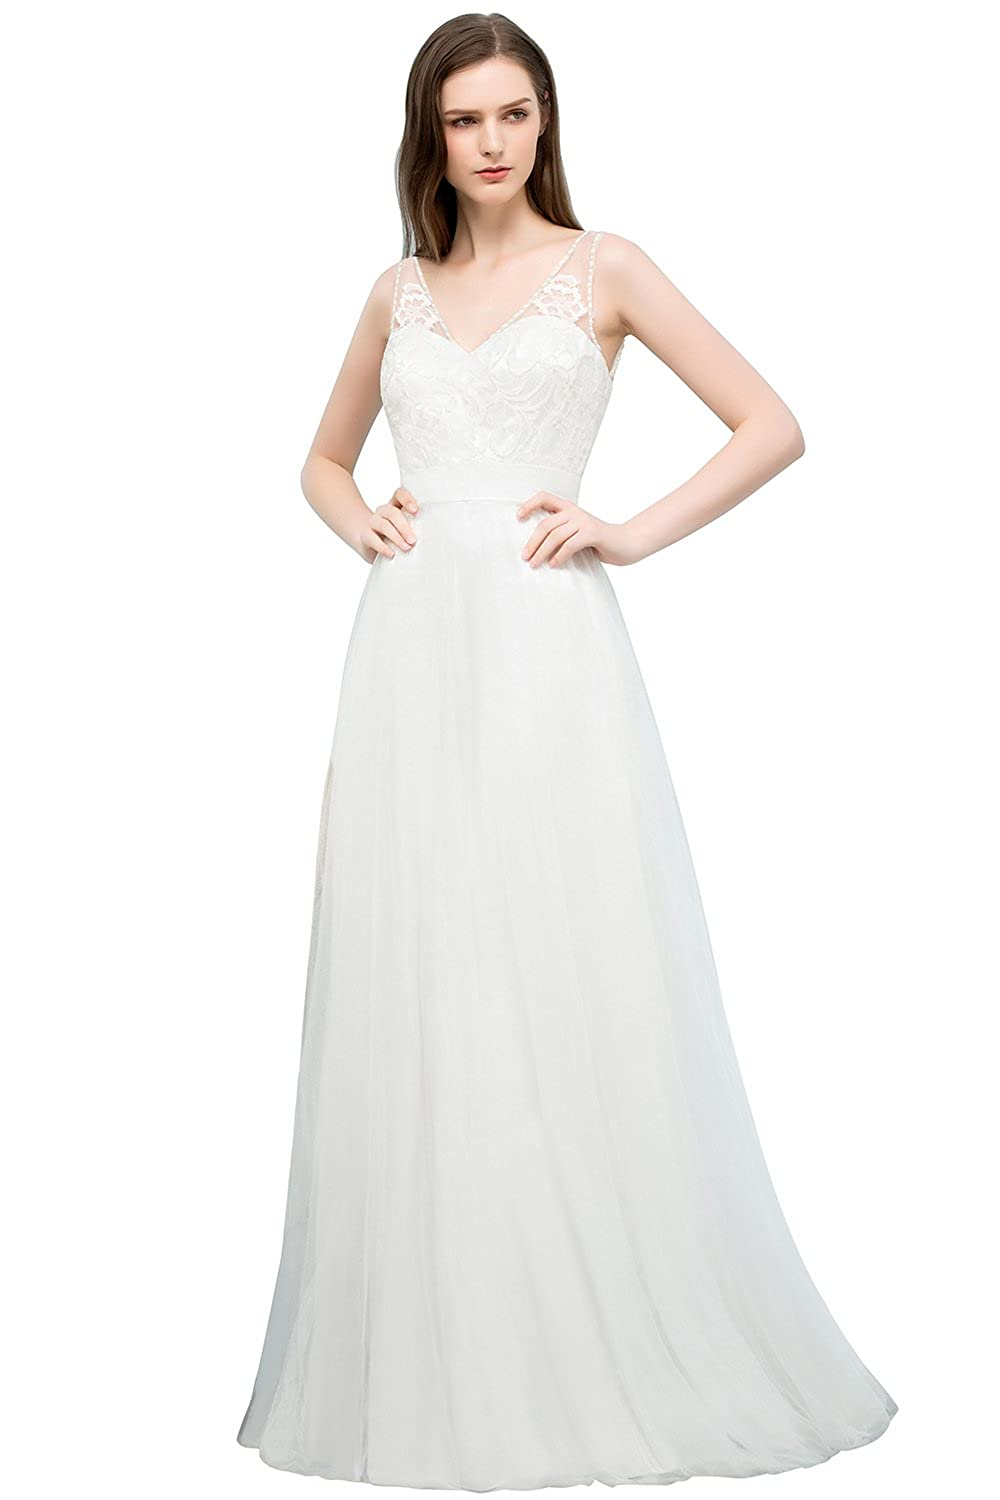 2df675807d6 Women 2018 Informal Wedding Dress for Bride Guest Simple Gown at Amazon  Women s Clothing store